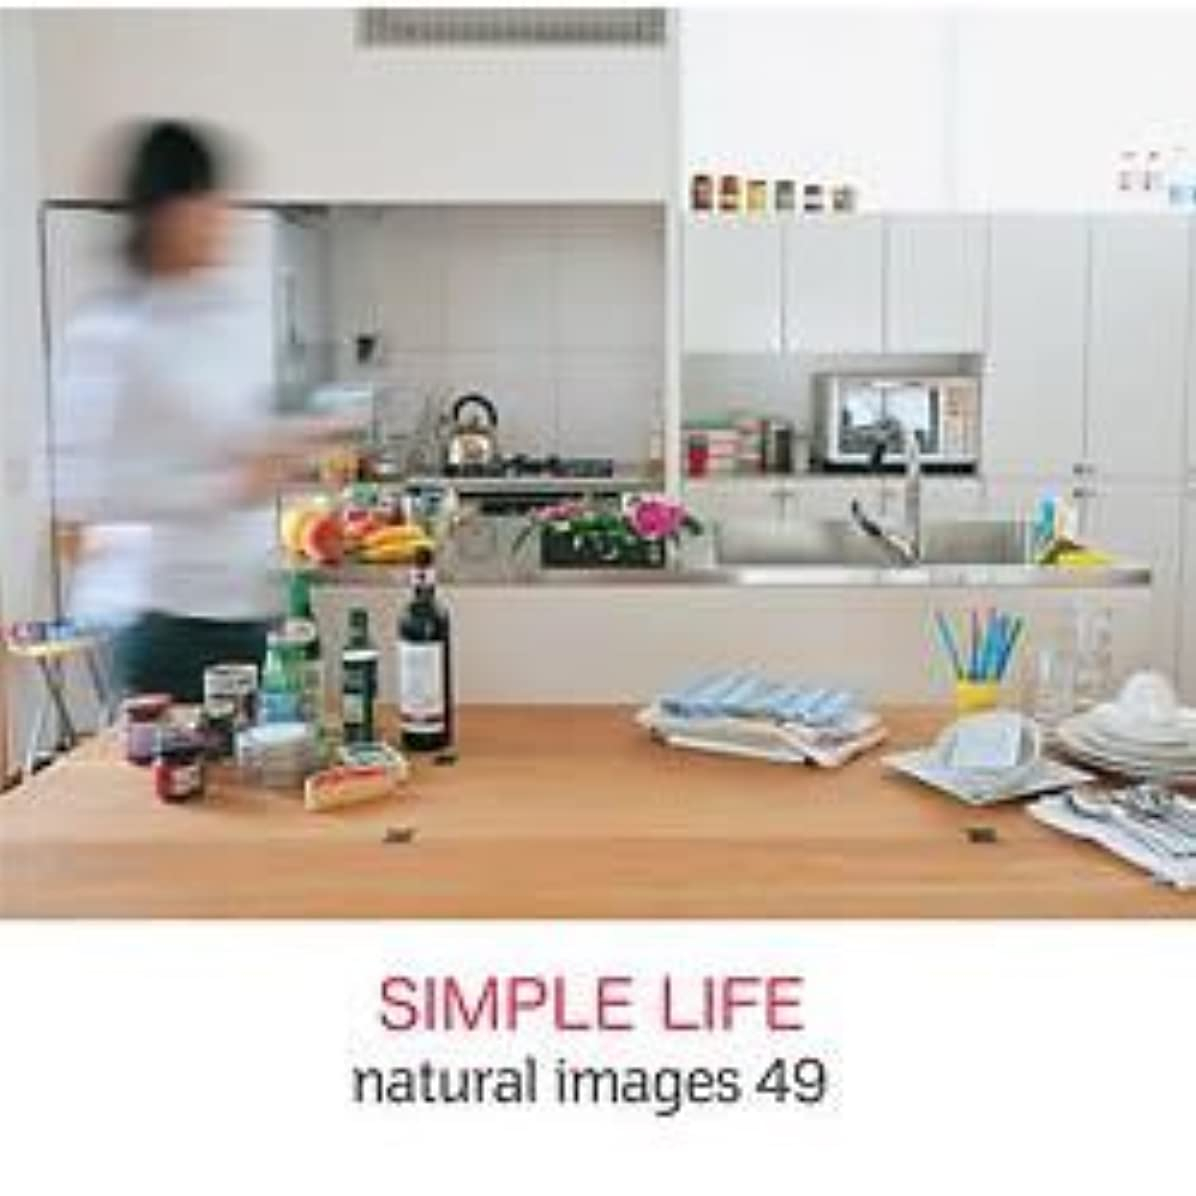 慣習宣言下natural images Vol.49 SIMPLE LIFE